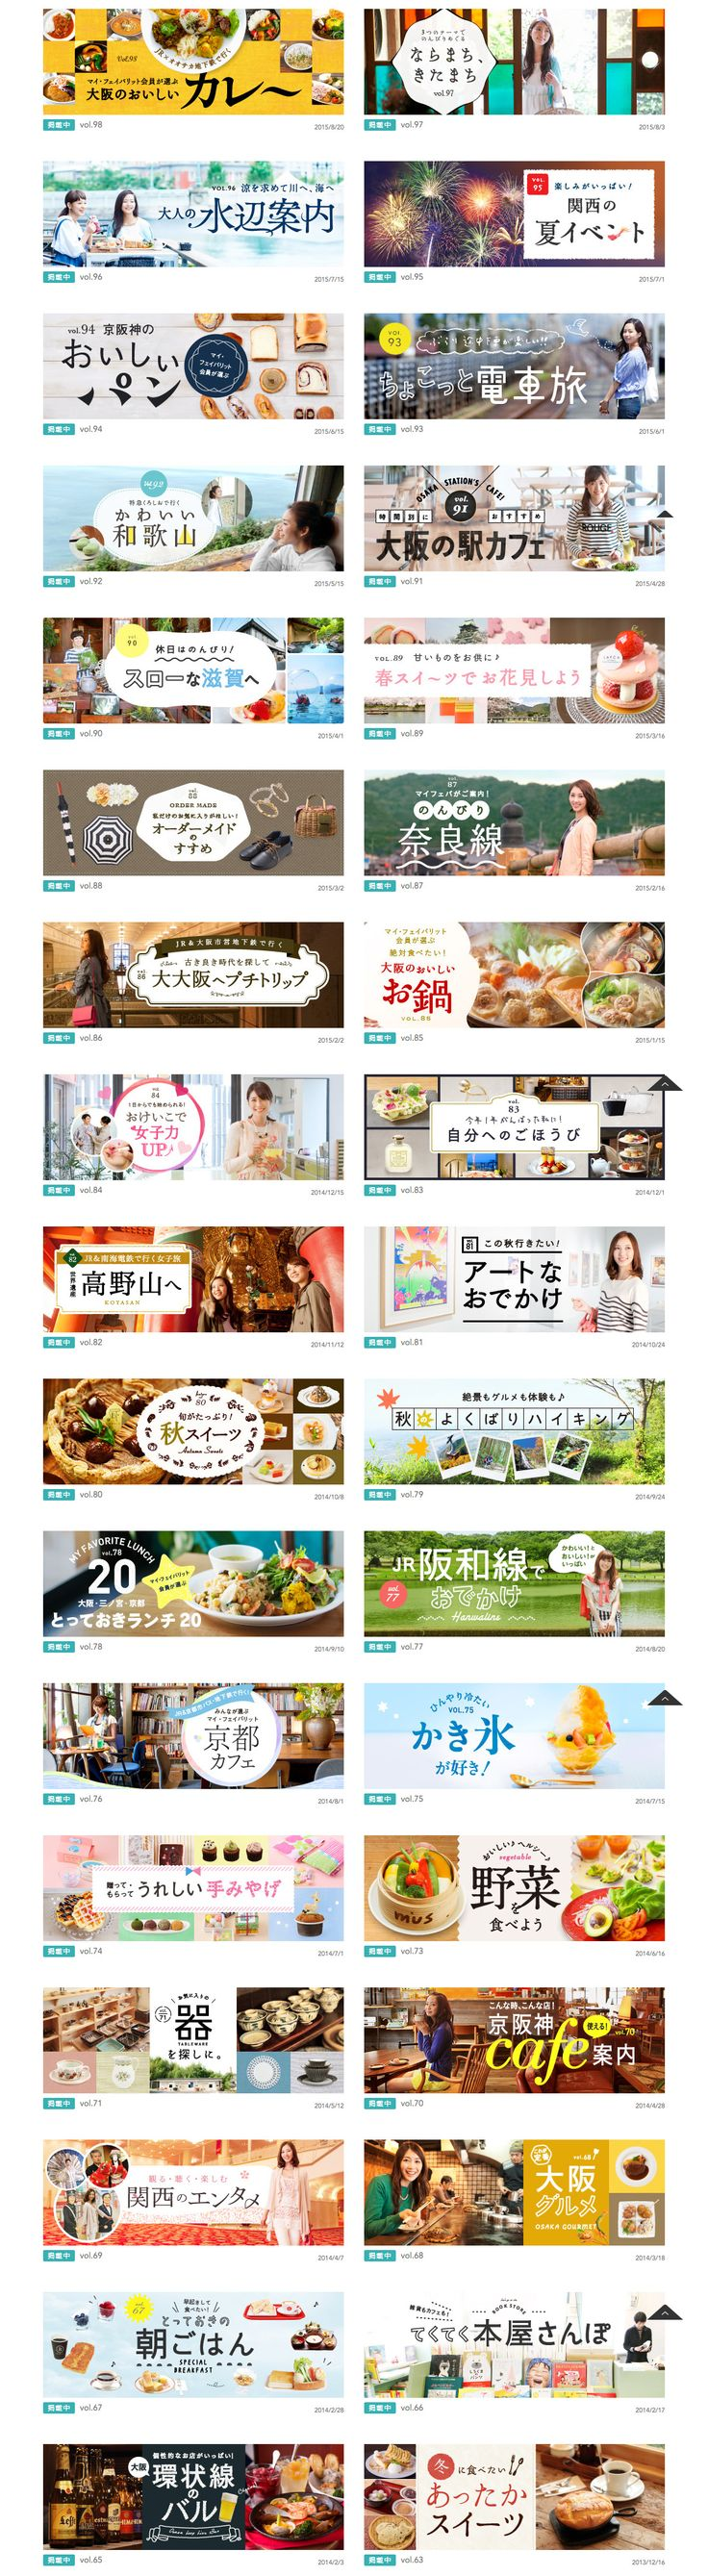 Japanese ads... so different visually from America